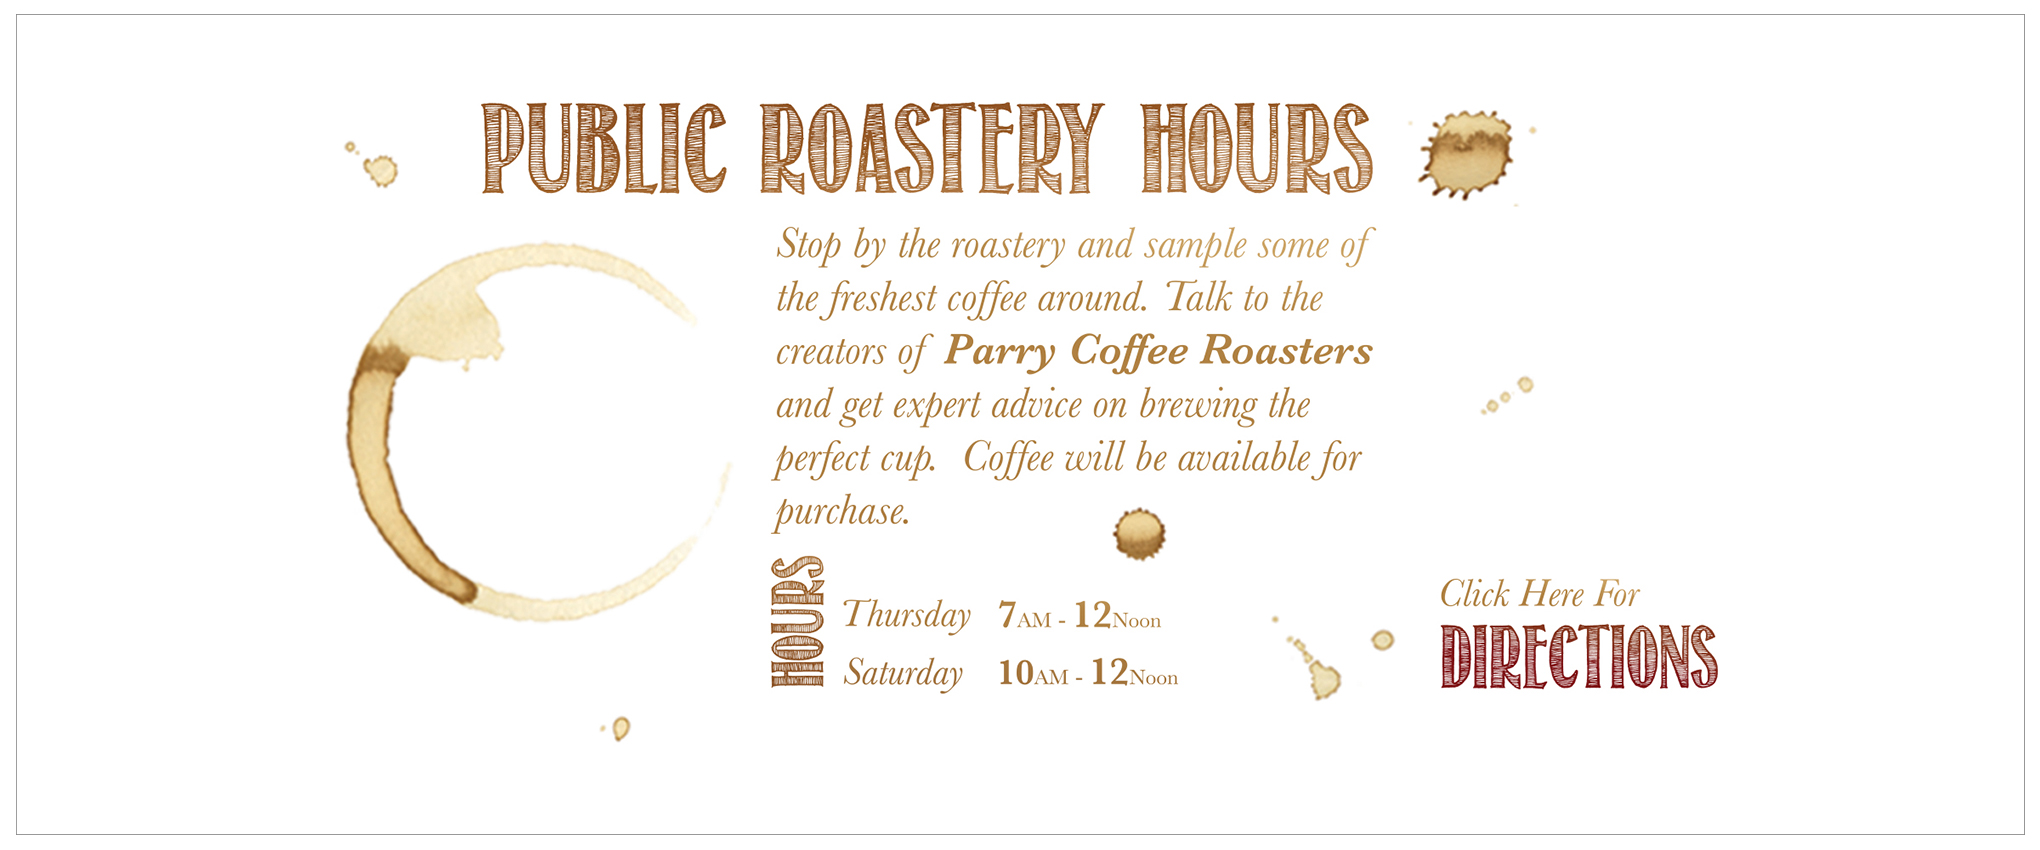 Public Roastery Hours Banner